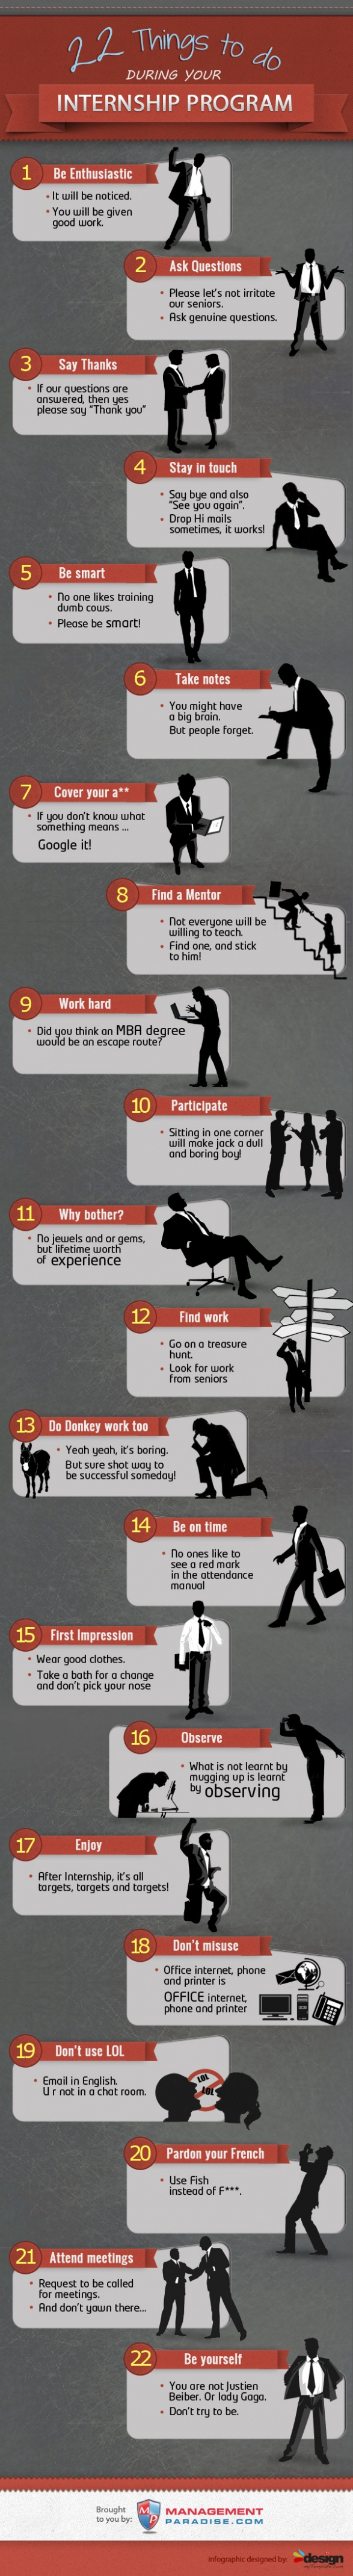 22 Things to do during your internship program